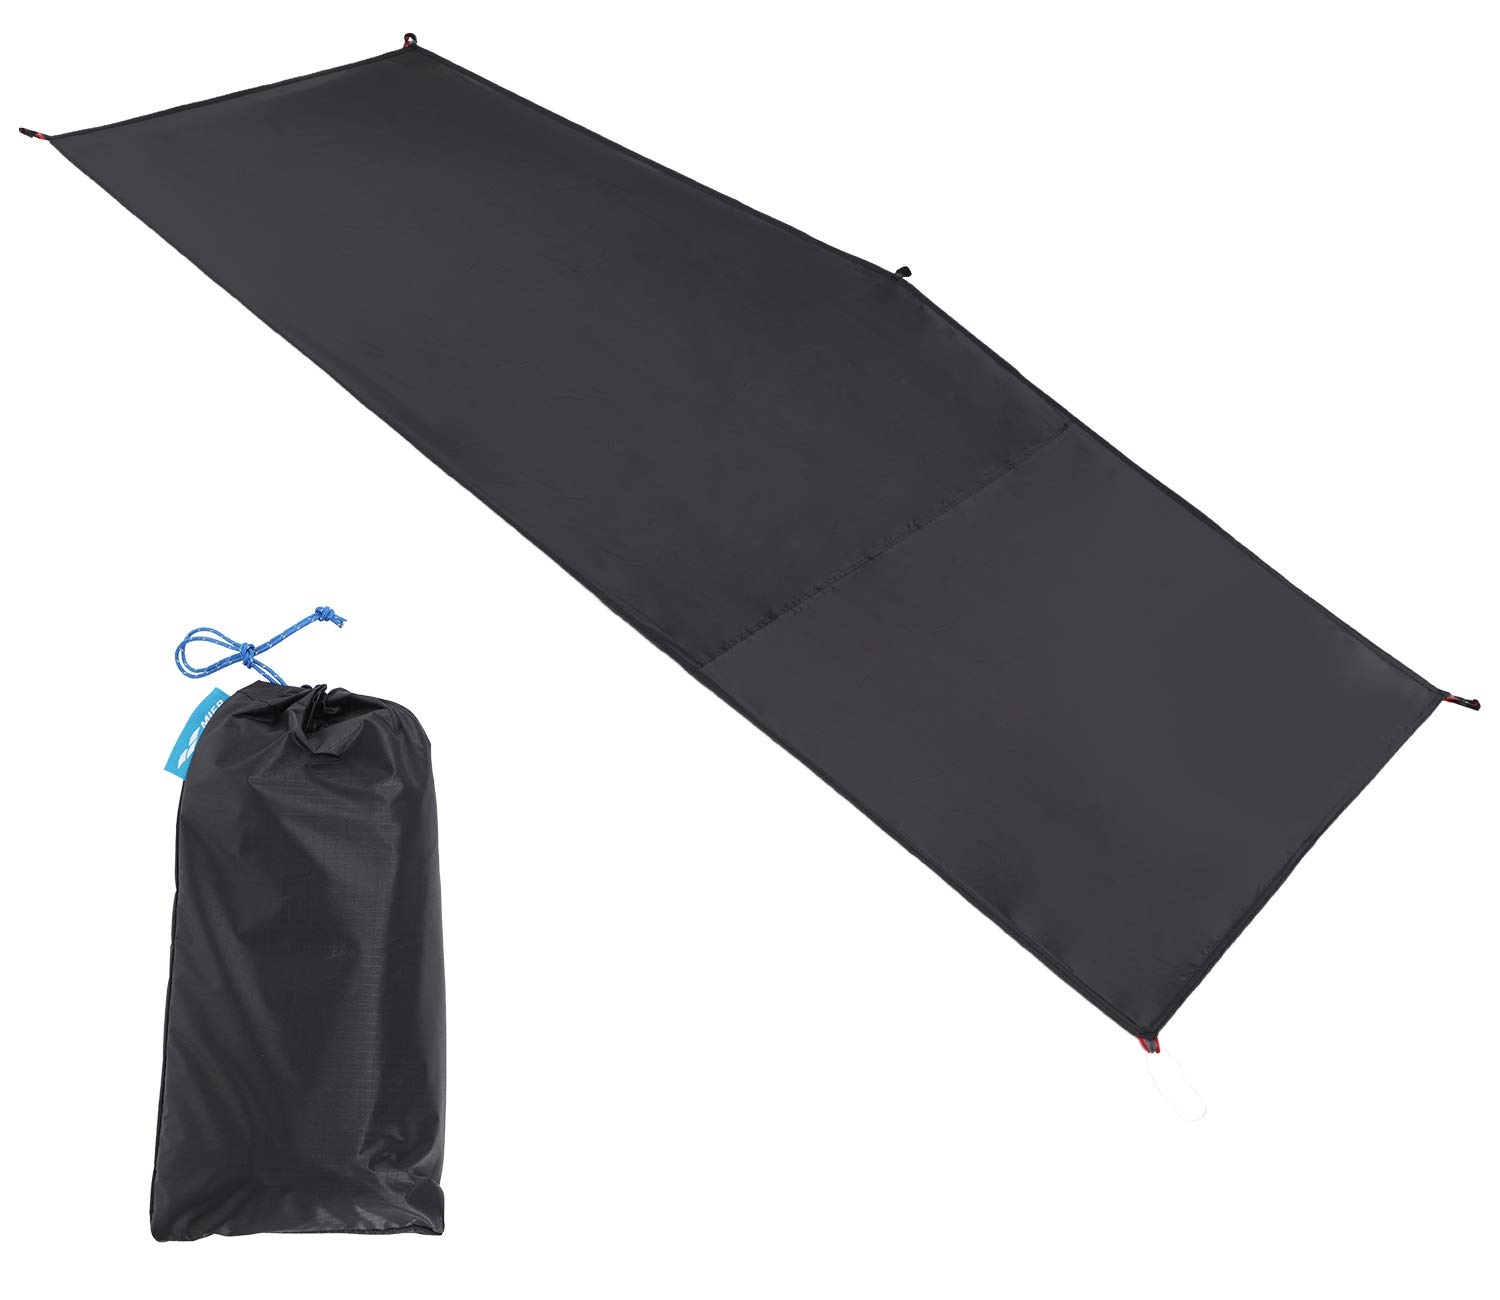 MIER 1-2 Person Ultralight Waterproof Footprint Outdoor Camping Tent Tarp Canopy Blanket Picnic Ground Sheet Mat, Ultralight Tent Fitted, 1 Person by MIER